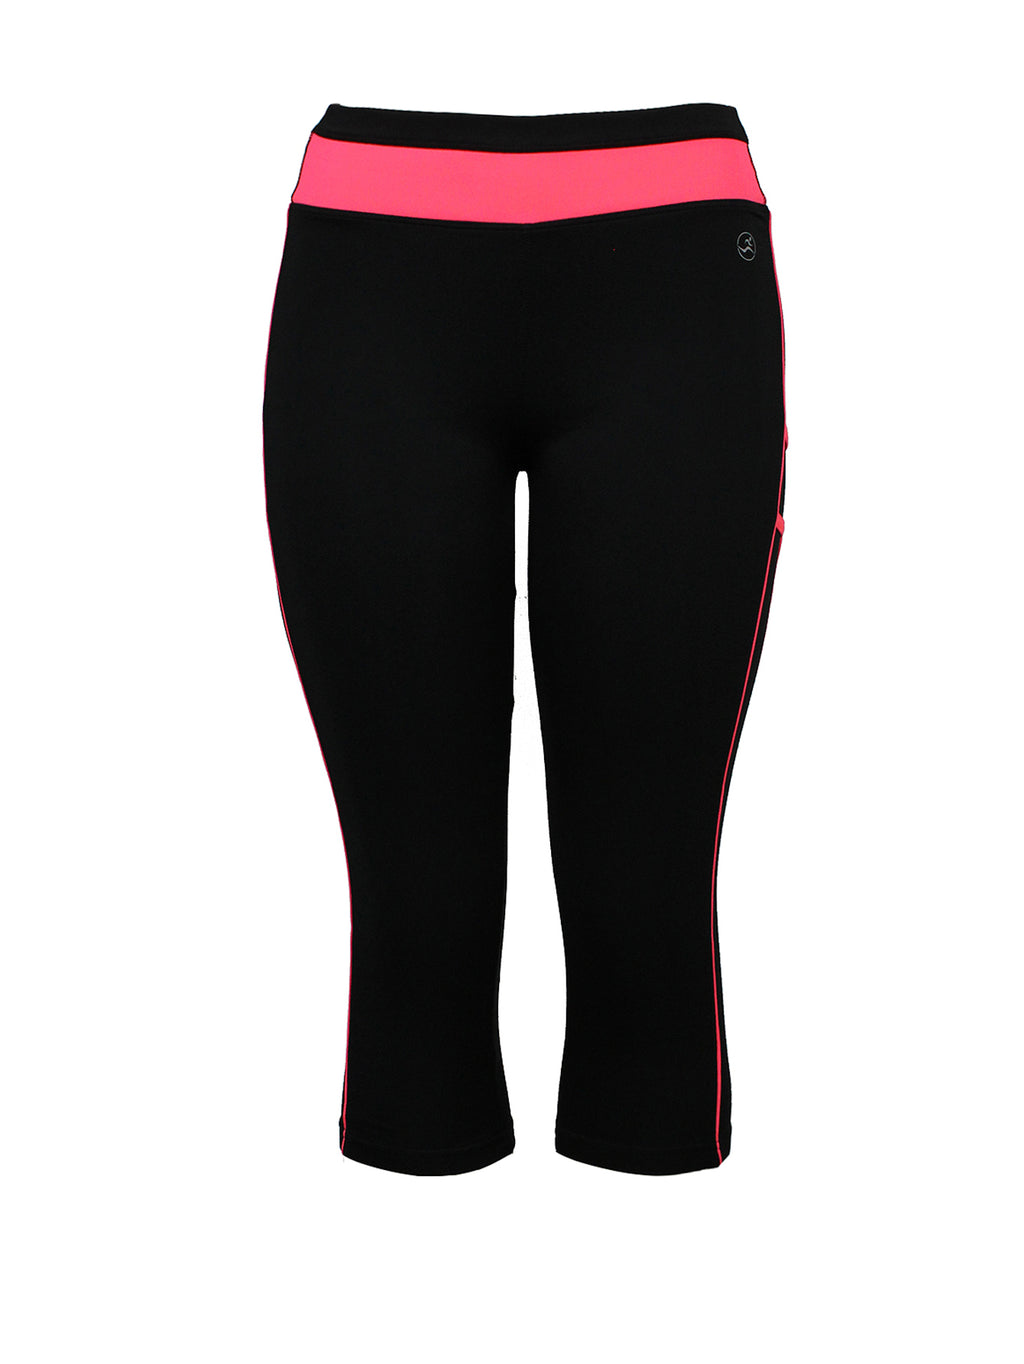 Fit-In Sports Crop Fitness/Running Pants | 2 colors